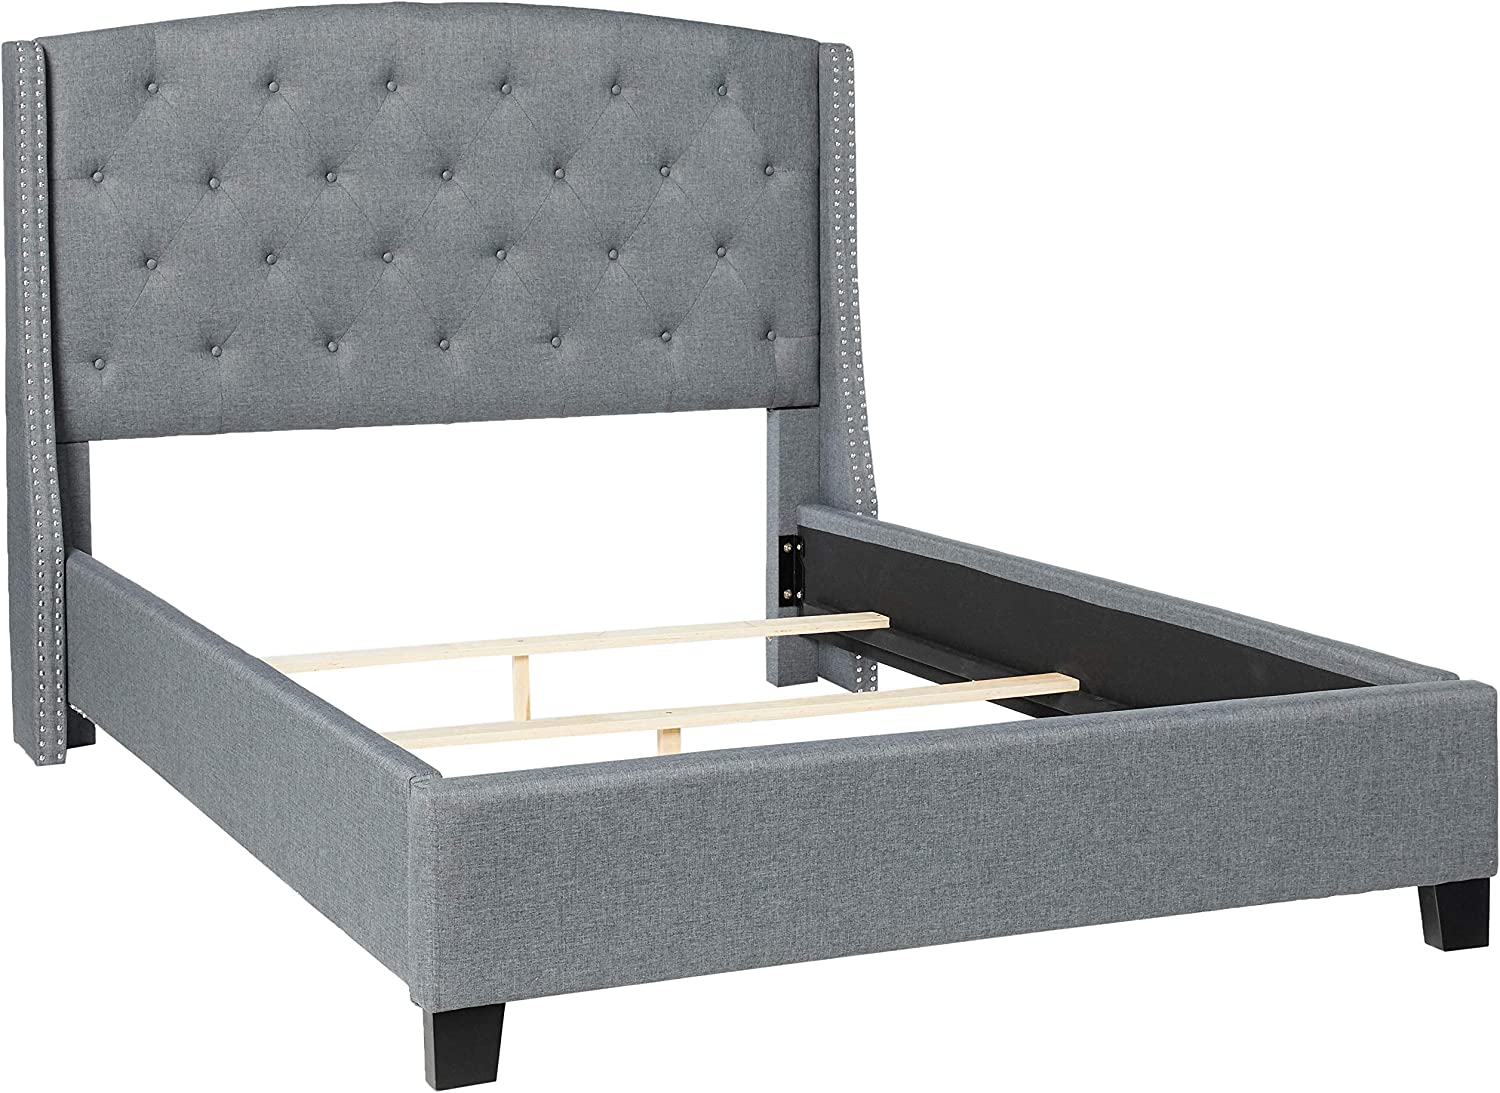 Roundhill Furniture Nantarre Fabric Tufted Wingback Upholstered Bed with Nailhead Trim, Queen, Gray